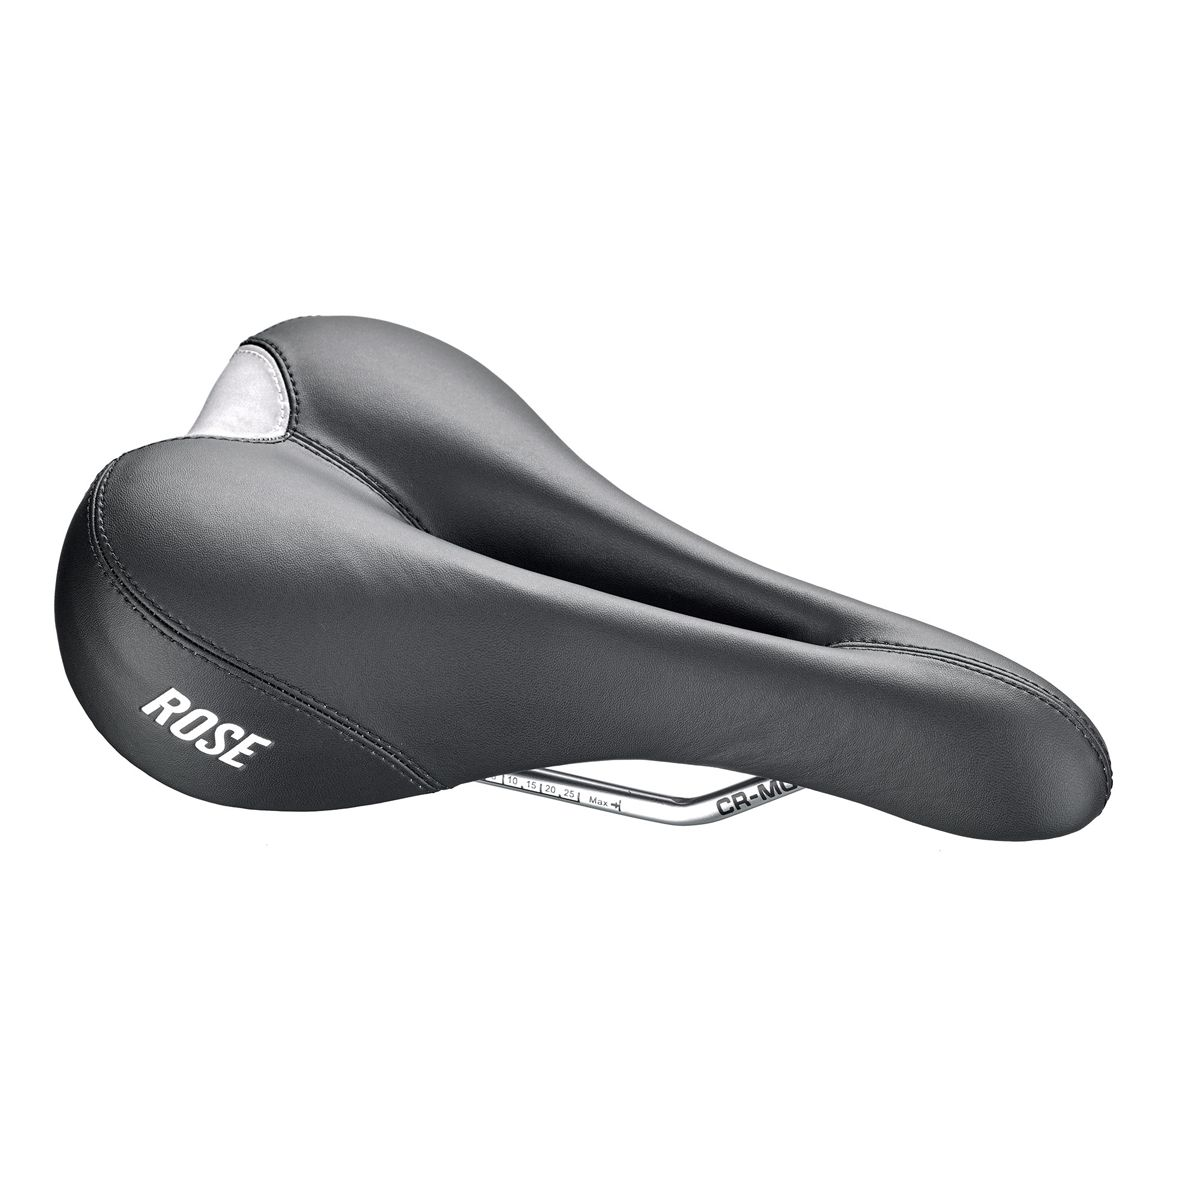 Lady Pro Comp 2 saddle